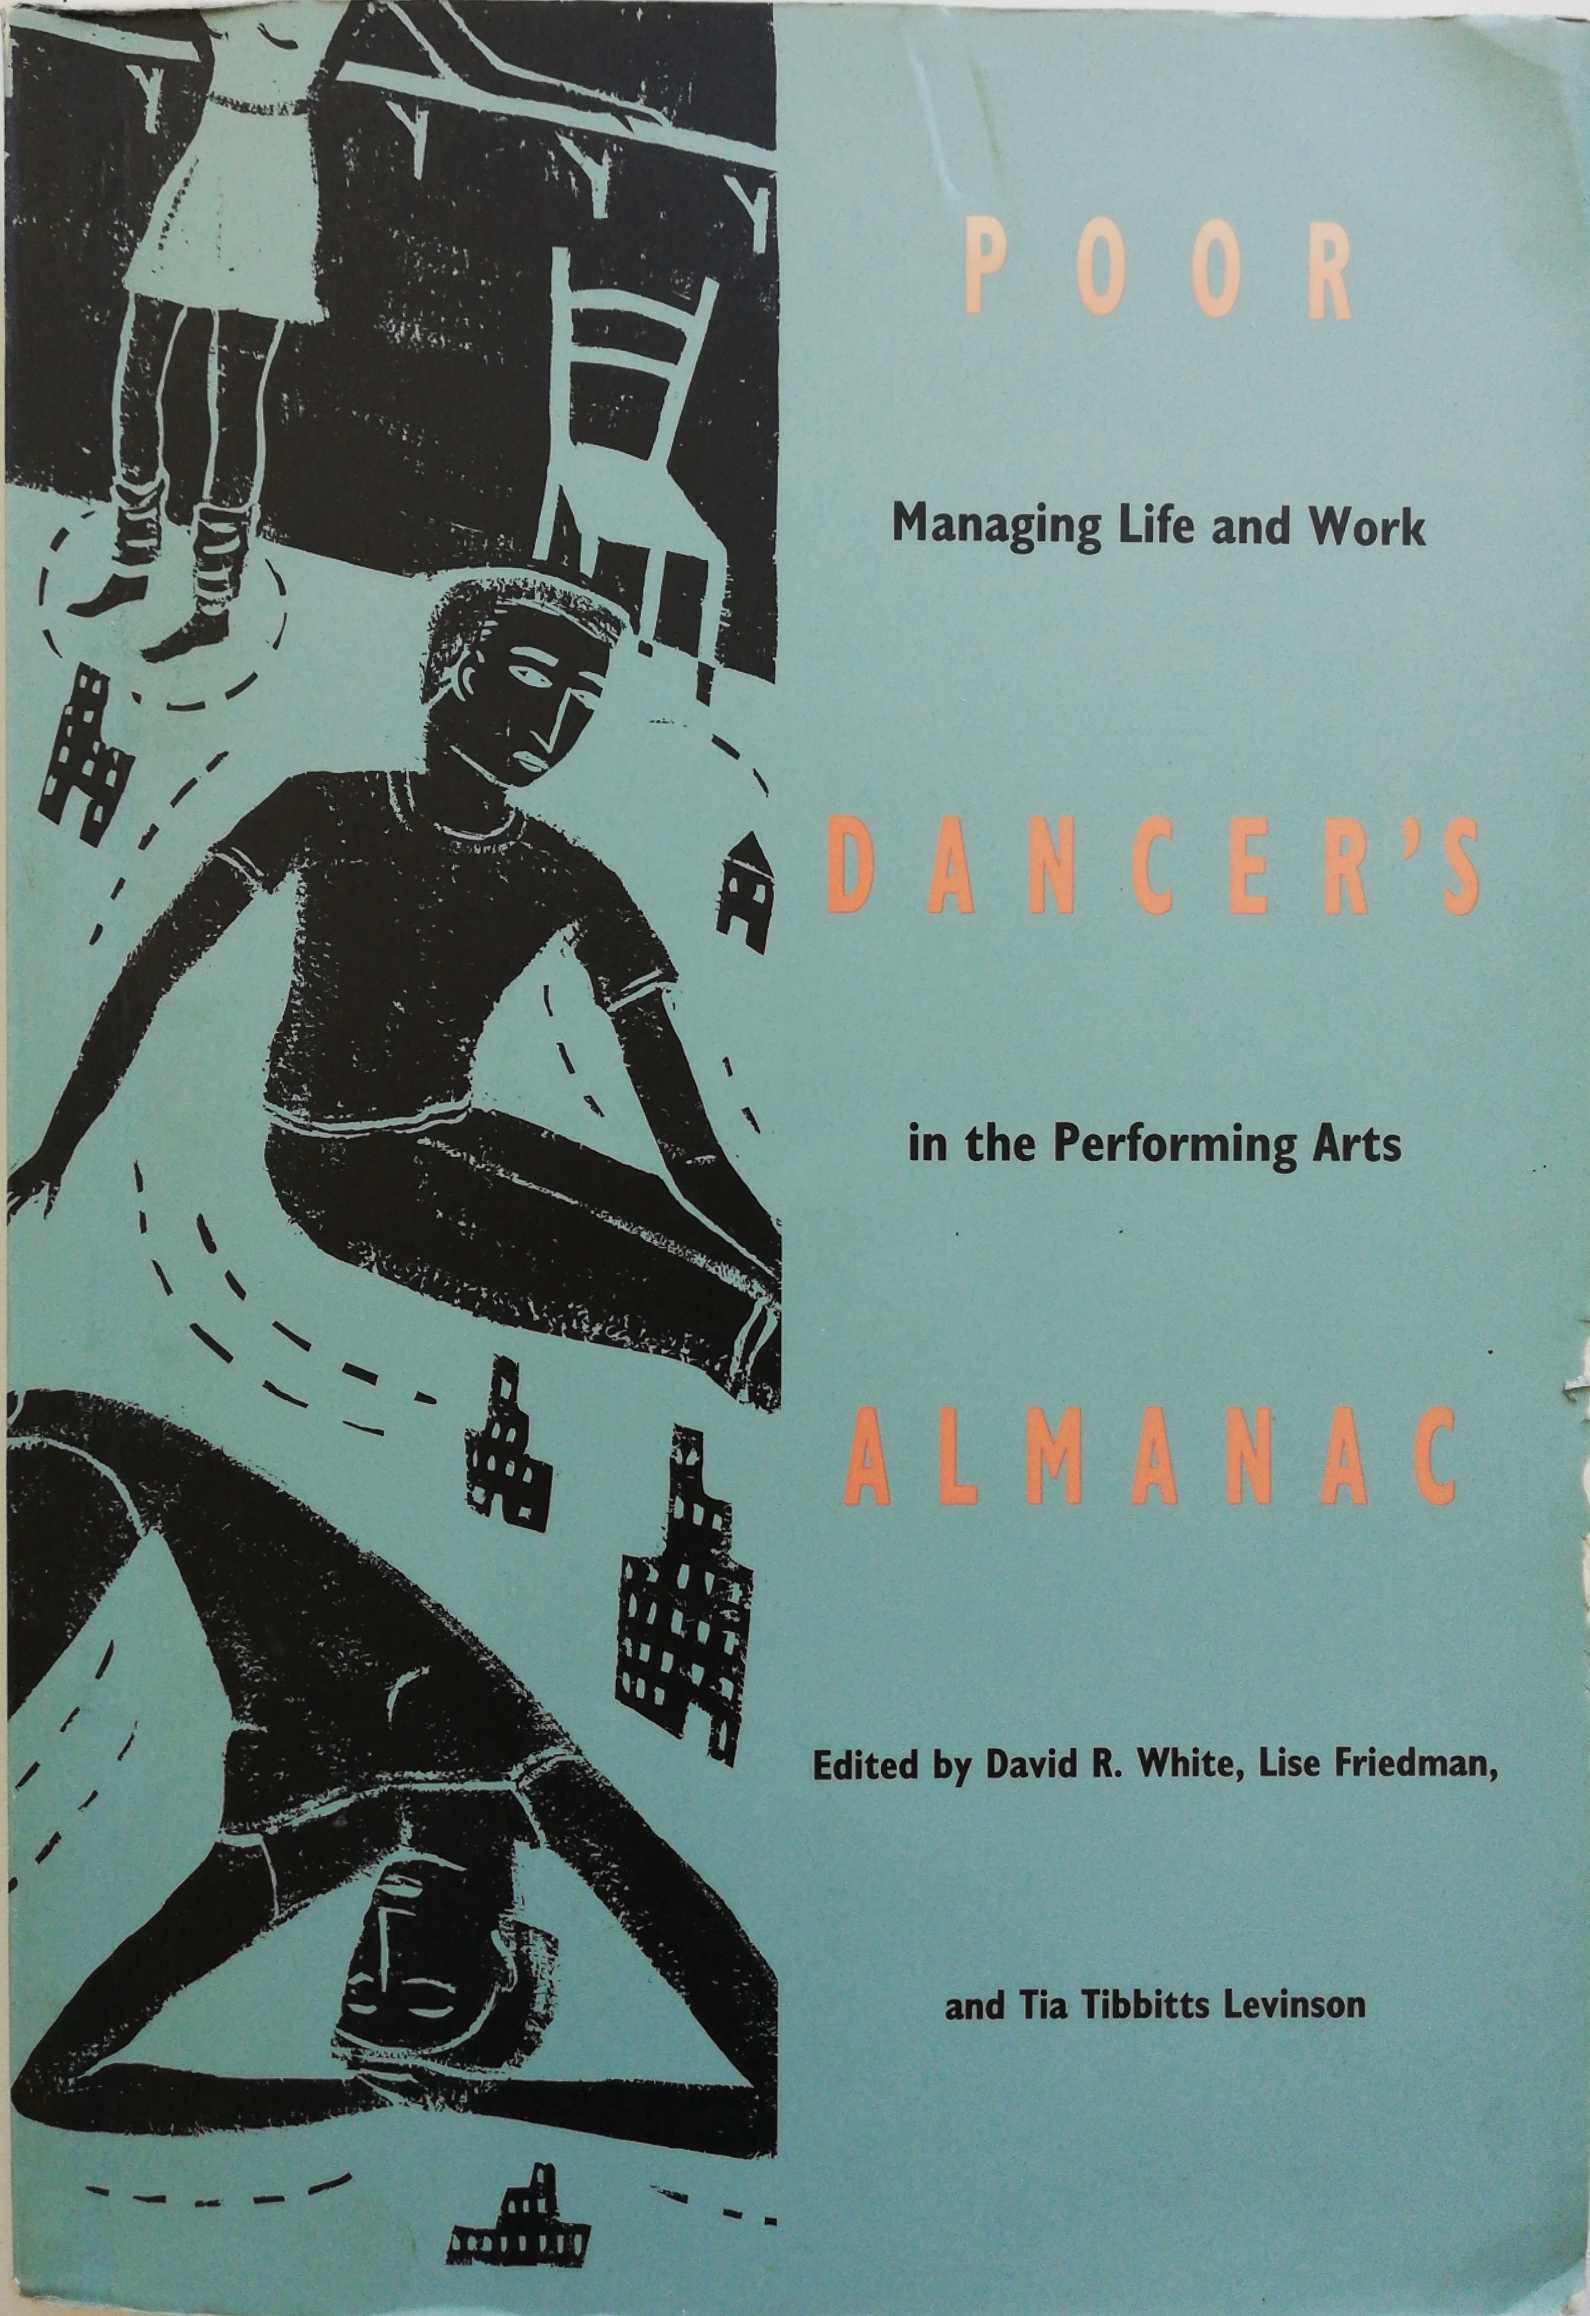 David R. White, Lise Friedman, Tia Levinson. Poor Dancer's Almanac: Managing Life and Work in the Performing Arts